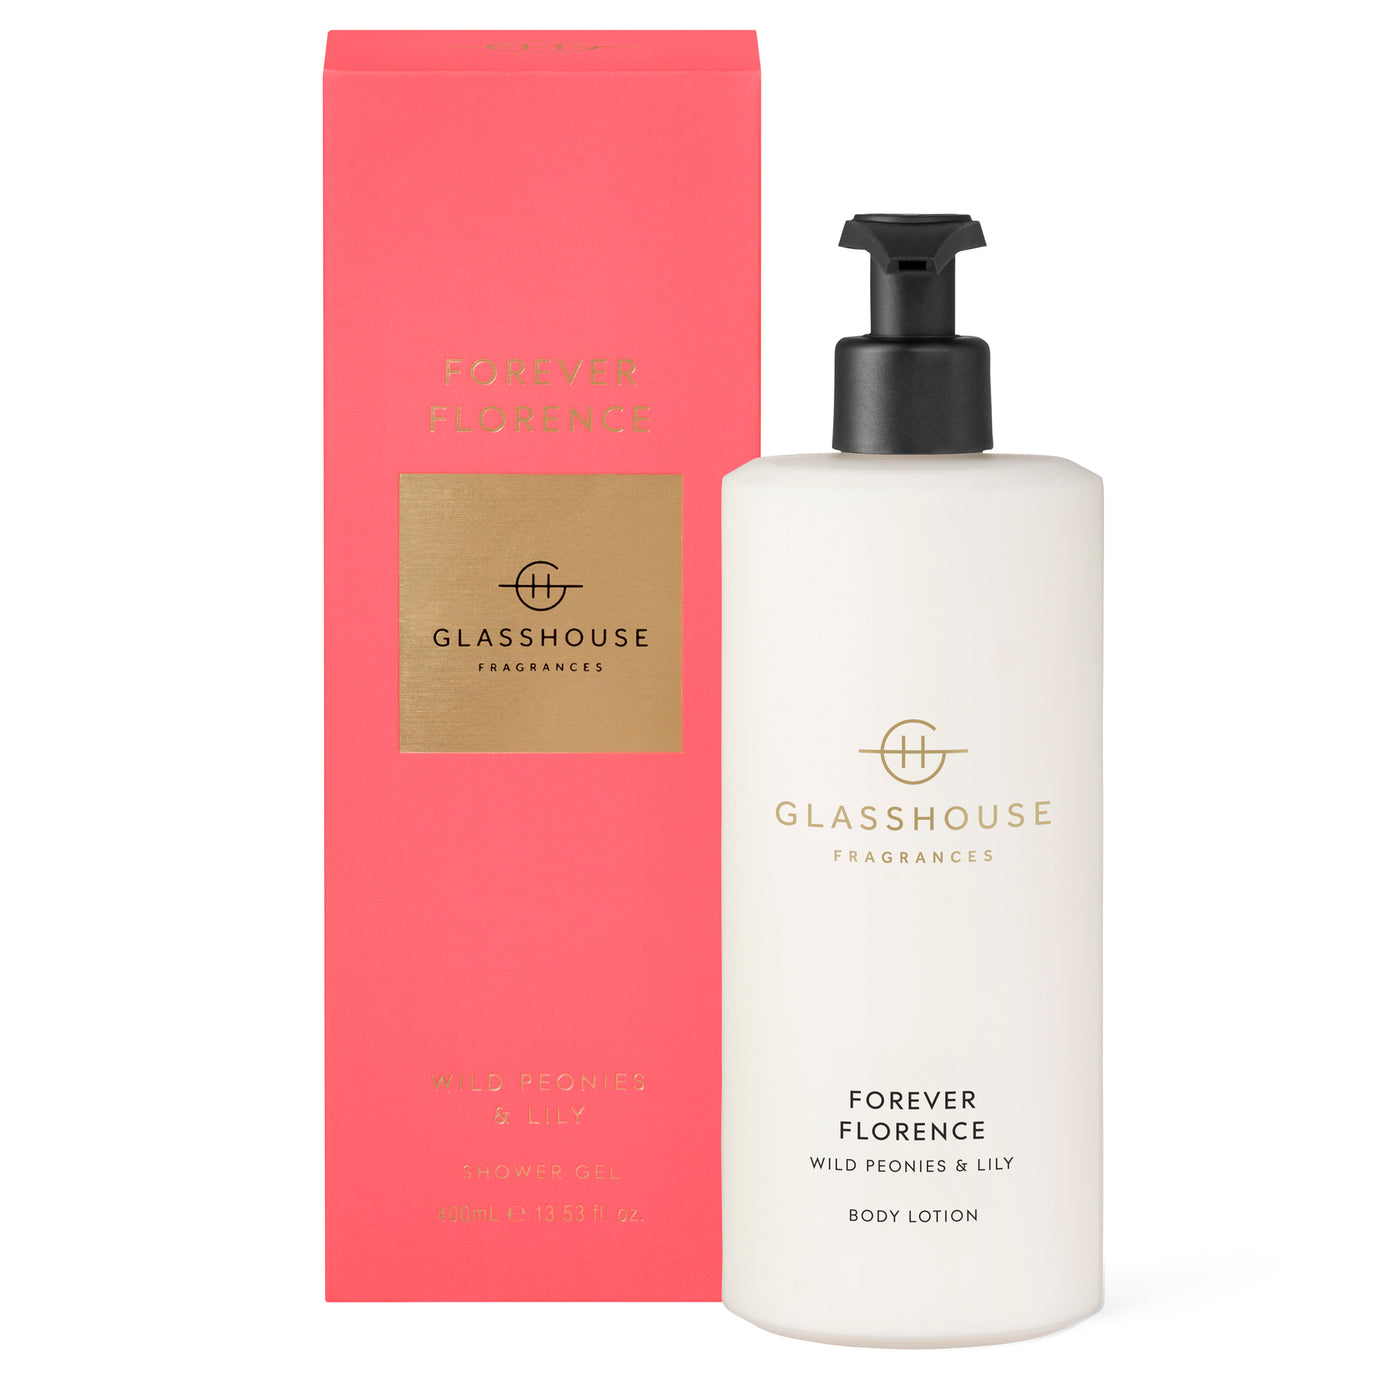 400ml FOREVER FLORENCE Body Lotion